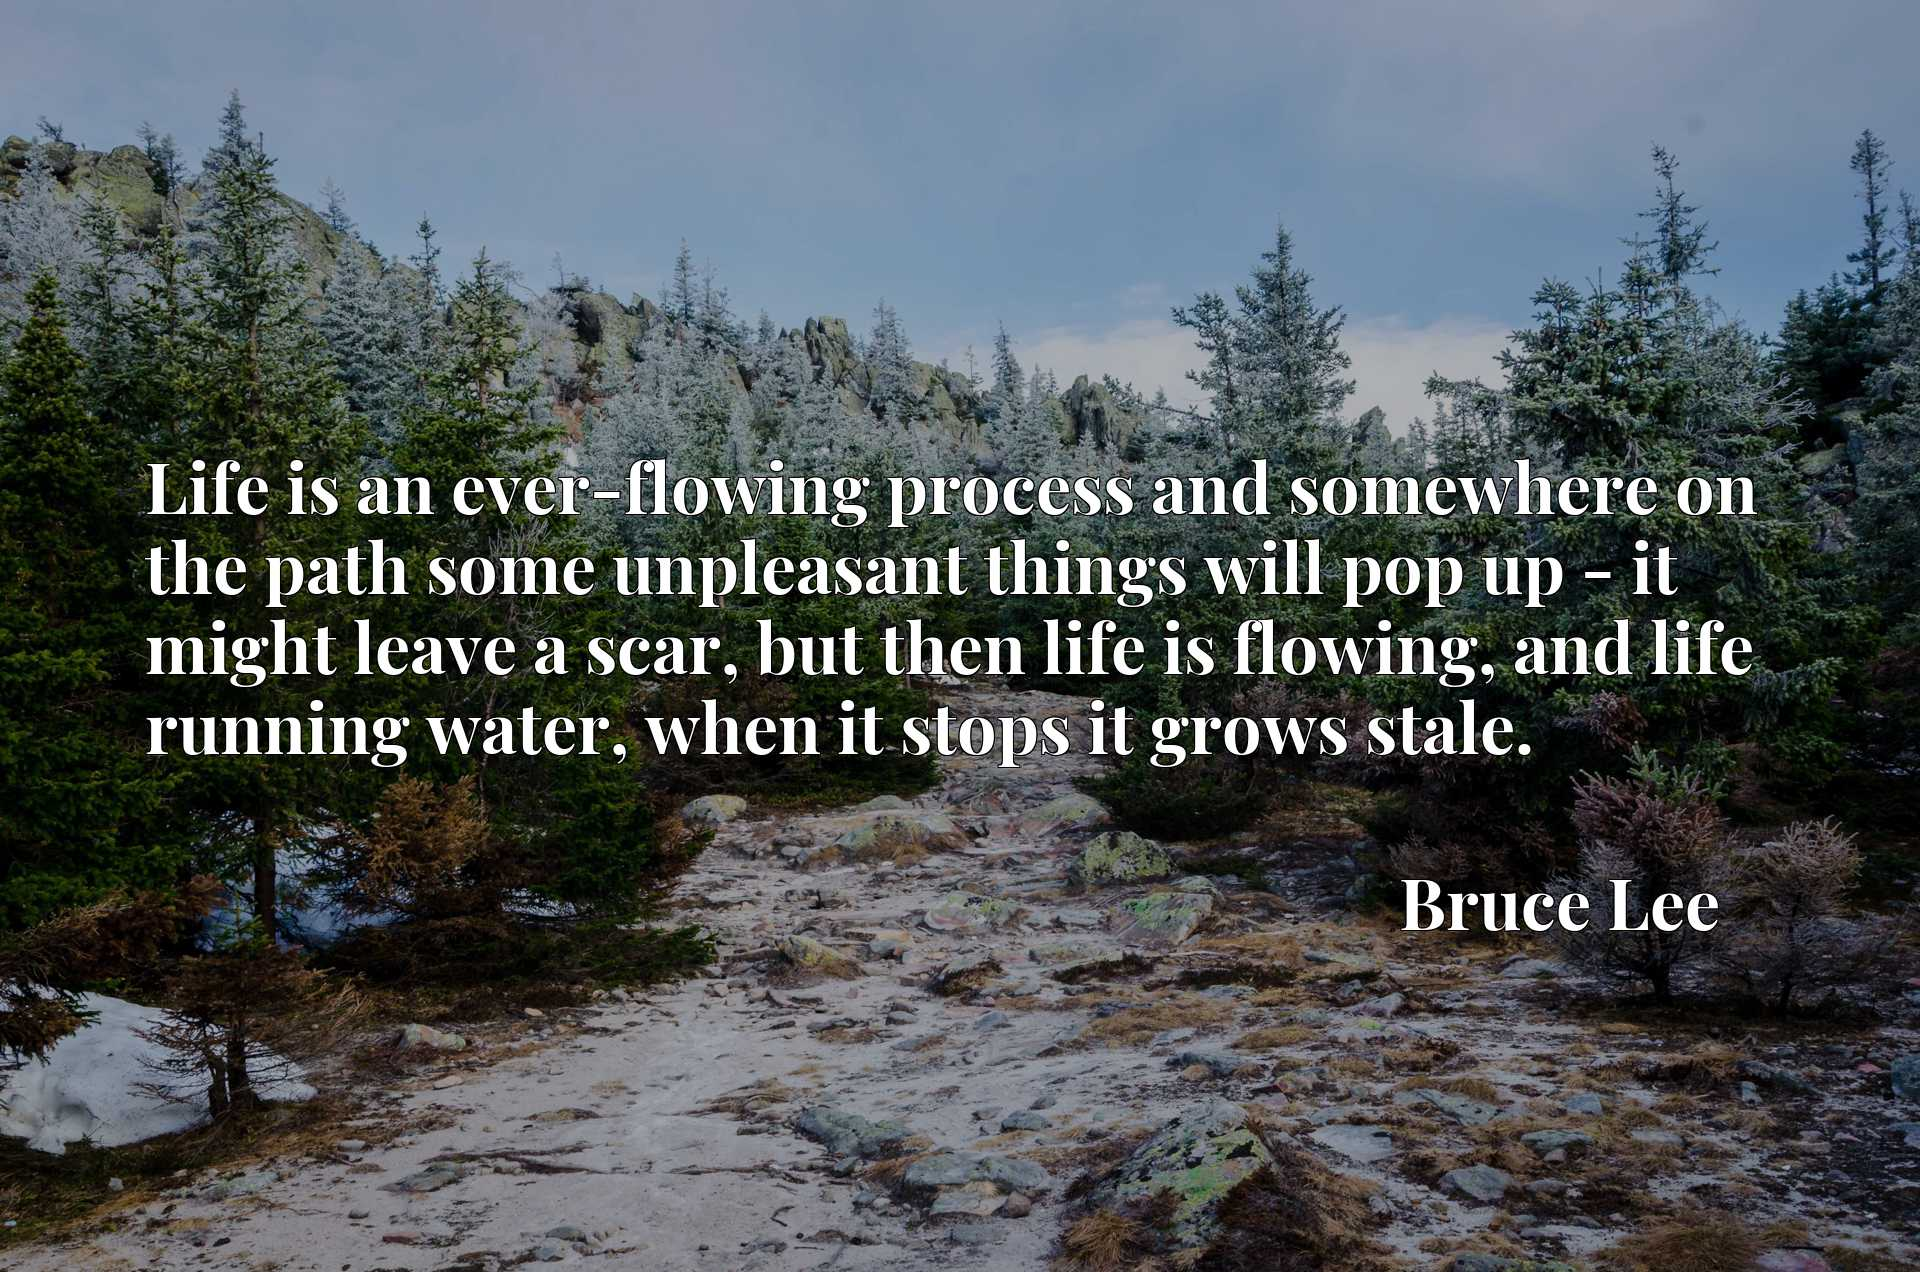 Life is an ever-flowing process and somewhere on the path some unpleasant things will pop up - it might leave a scar, but then life is flowing, and life running water, when it stops it grows stale.